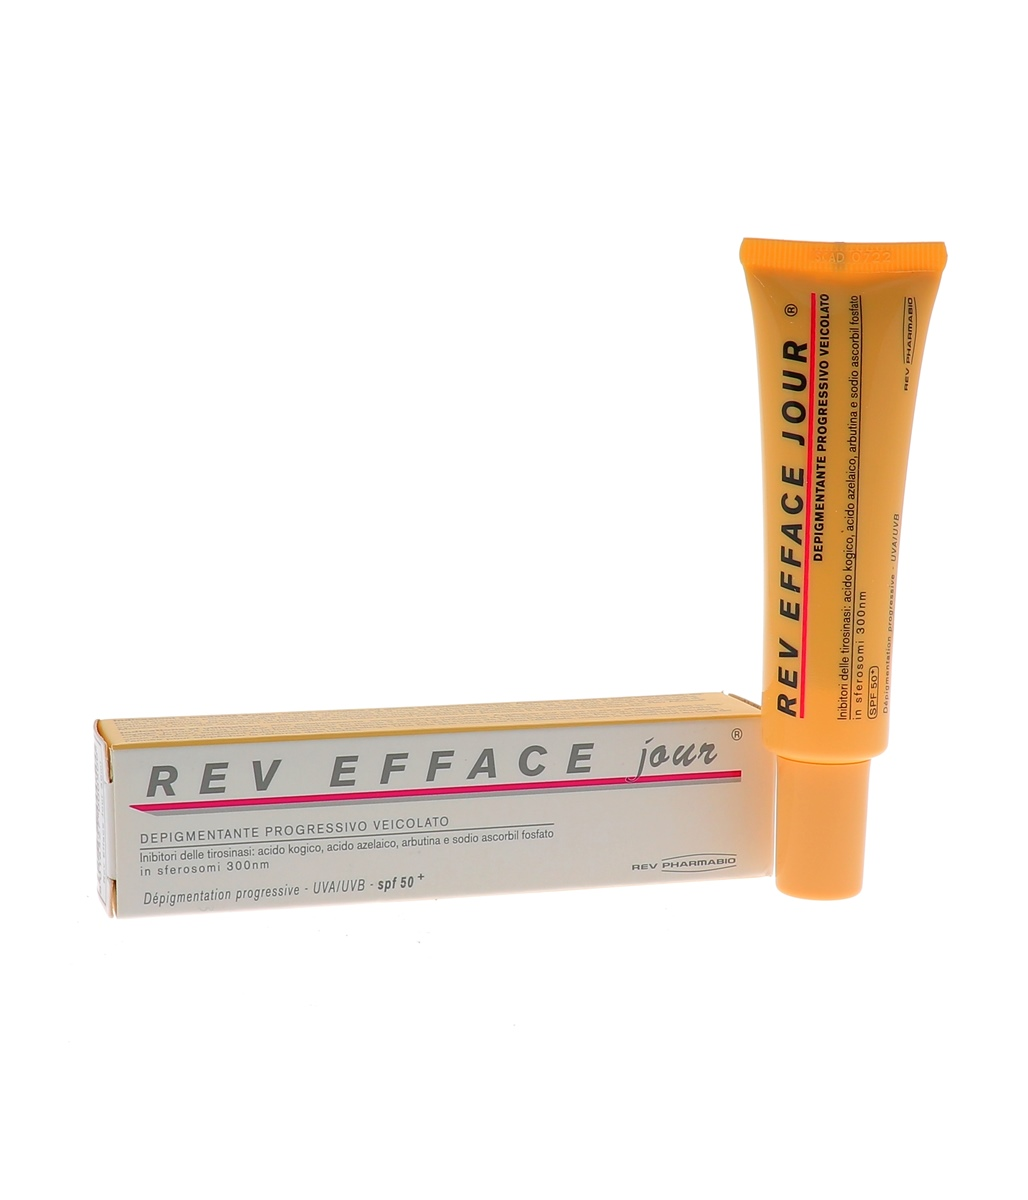 REV PHARMABIO Srl Rev Efface Jour 30ml